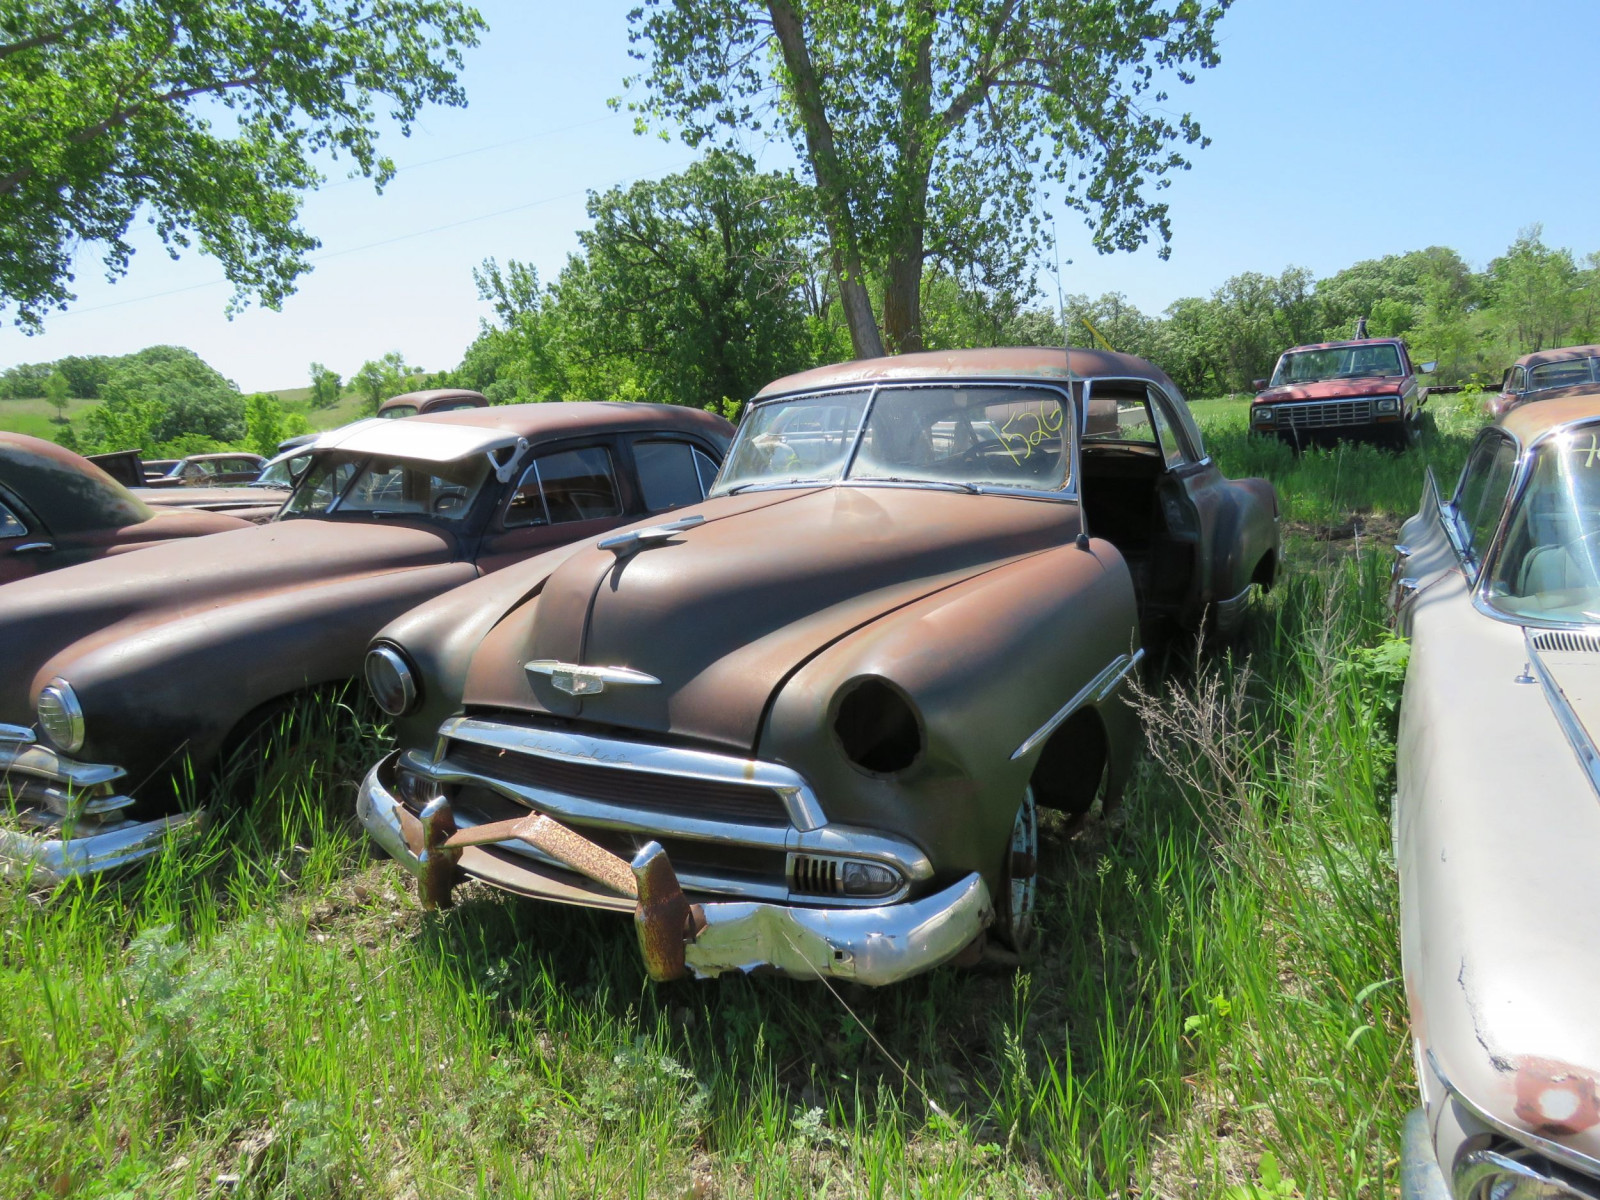 1949/50 Chevrolet Deluxe 2dr HT for parts - Image 1